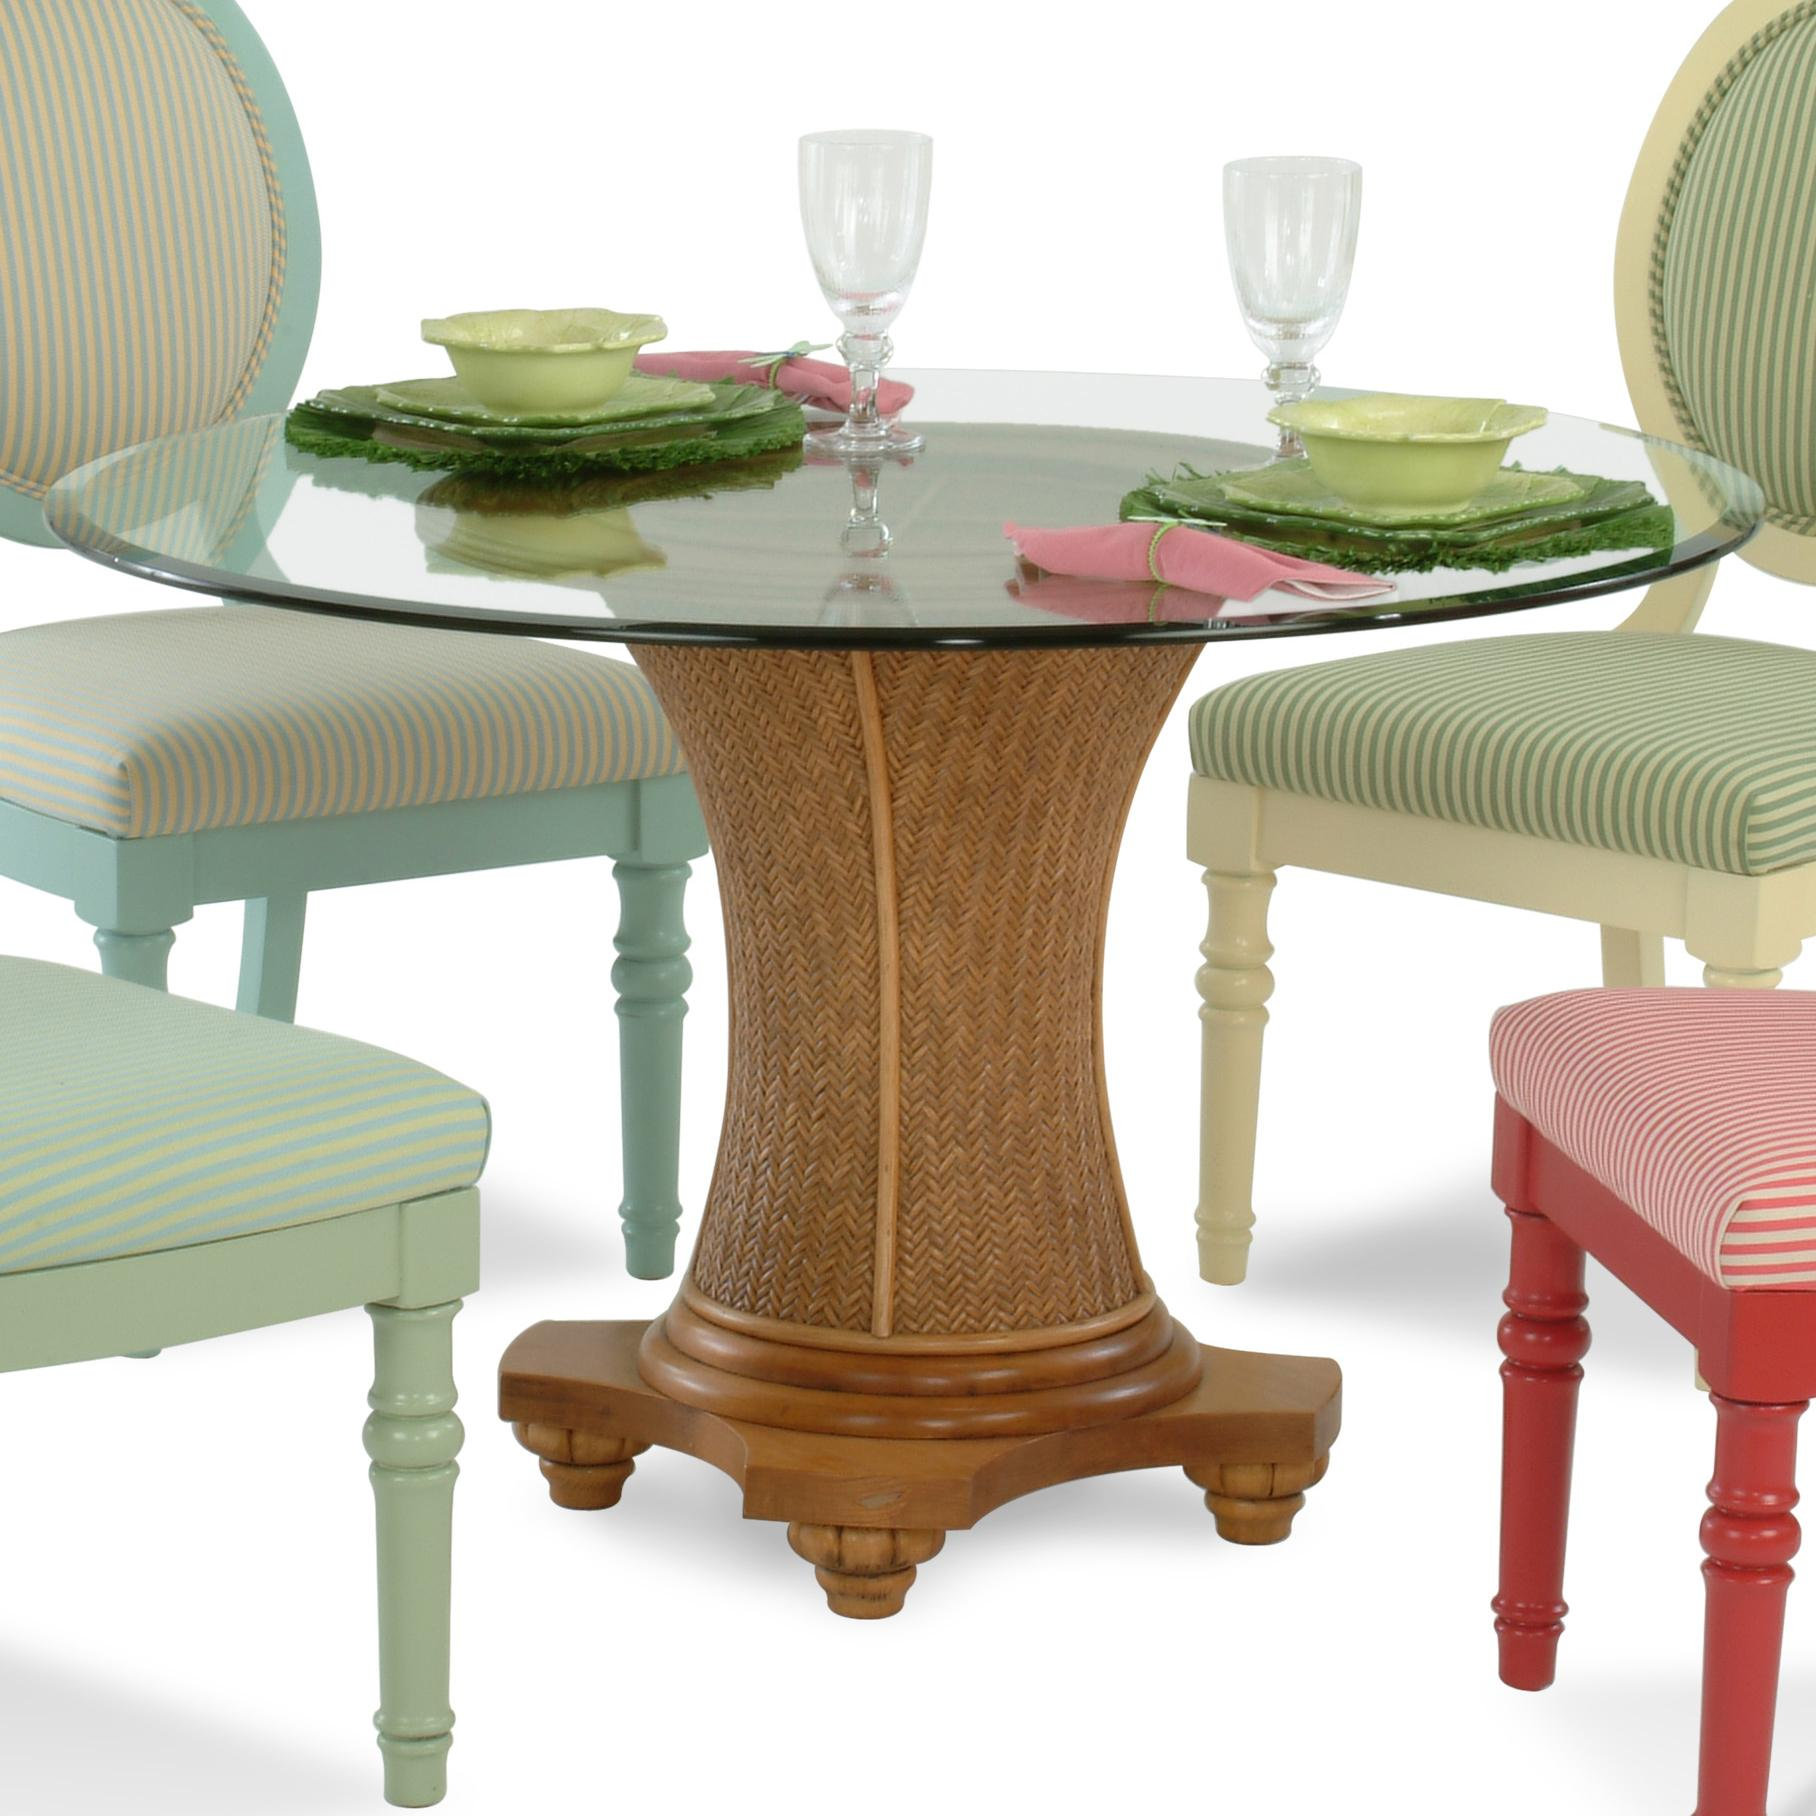 Braxton Culler Sawgrass Tropical Round Glass Table With Wicker Pedestal